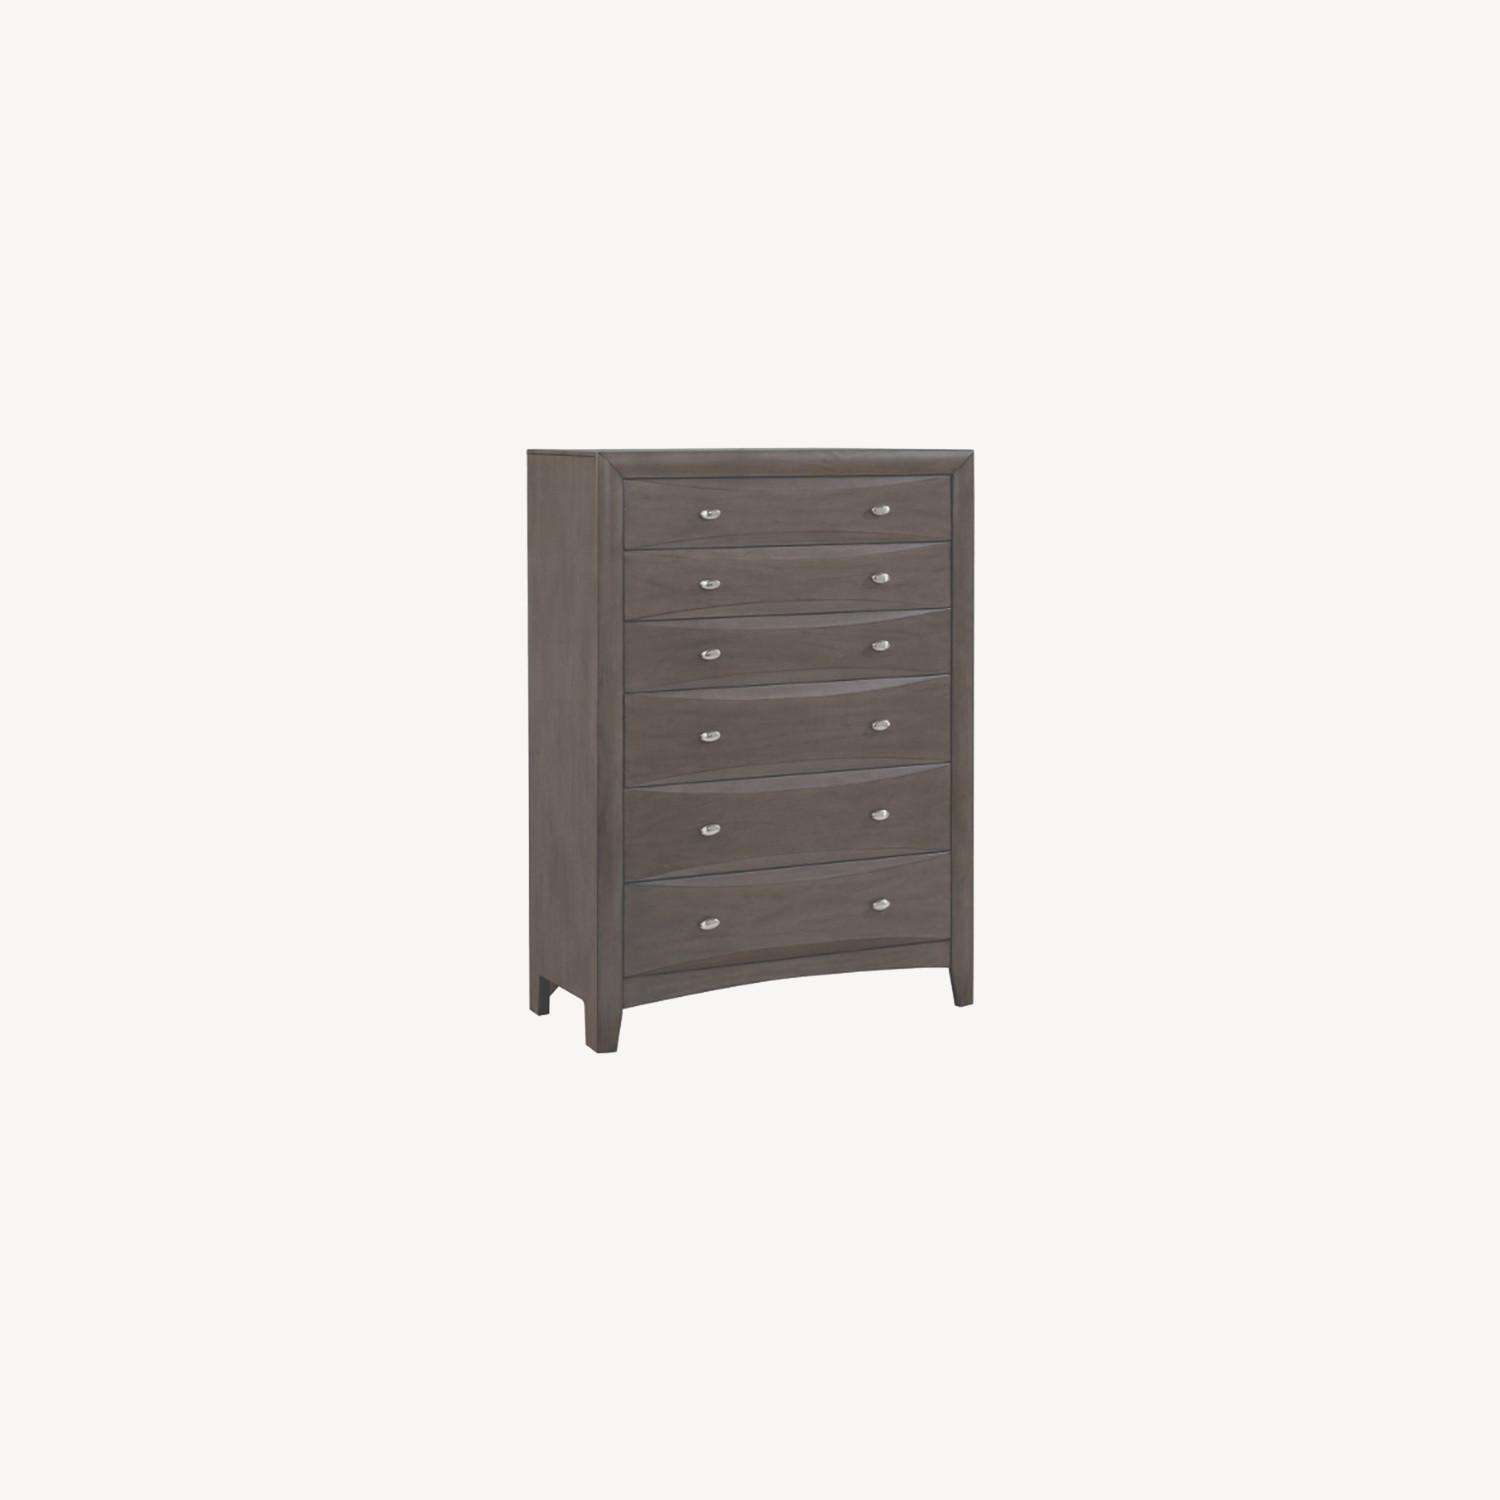 Chest In A Coco Grey Finish - image-4